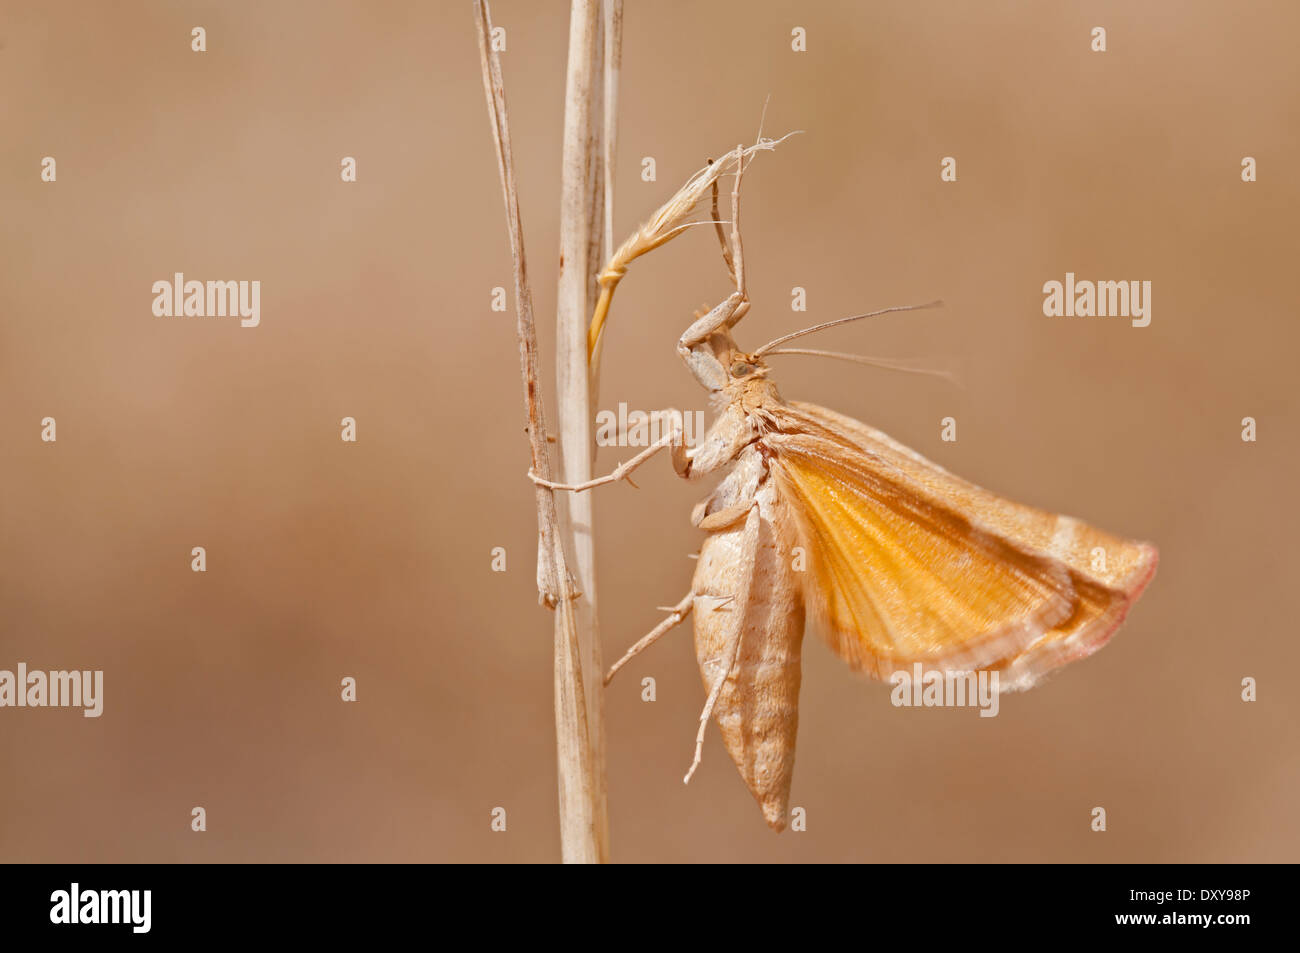 Moth wings, Side view - Stock Image